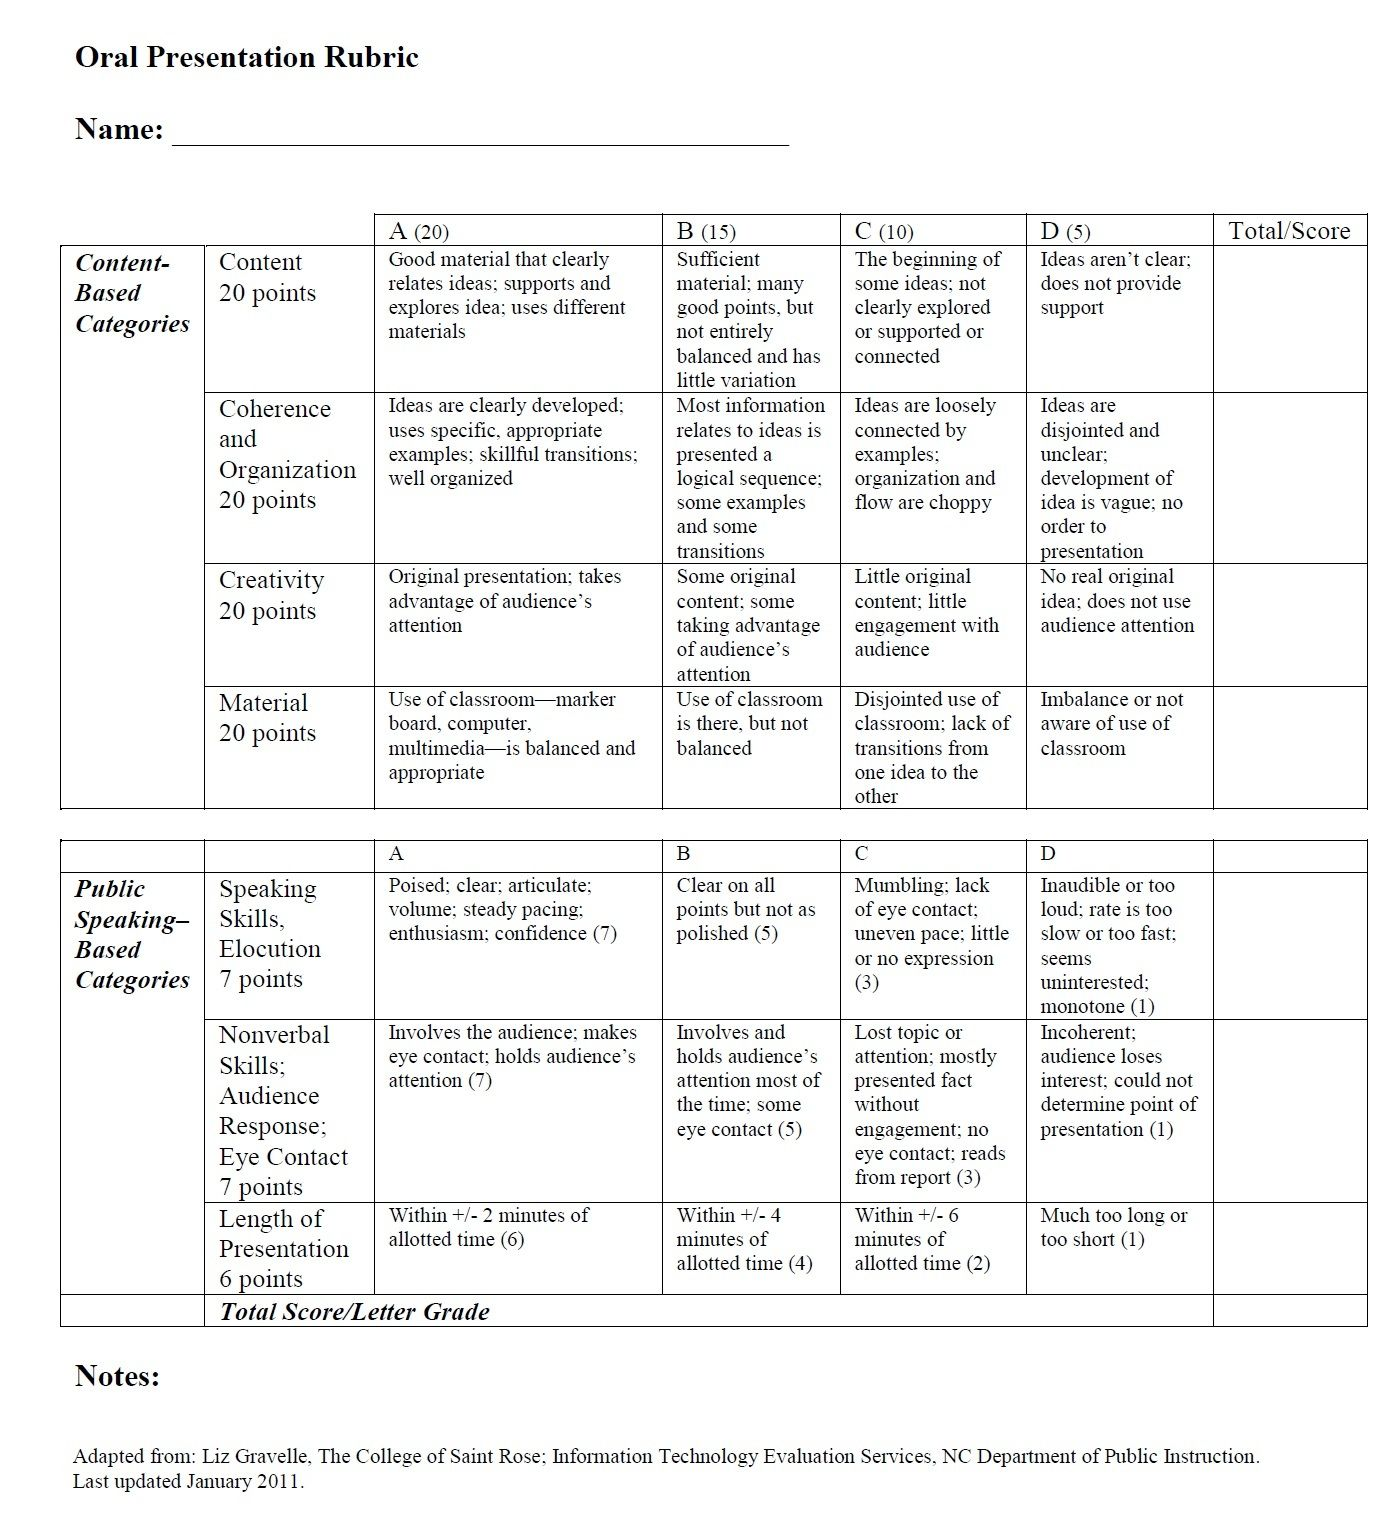 iRubric: Graduate Writing Assignment rubric